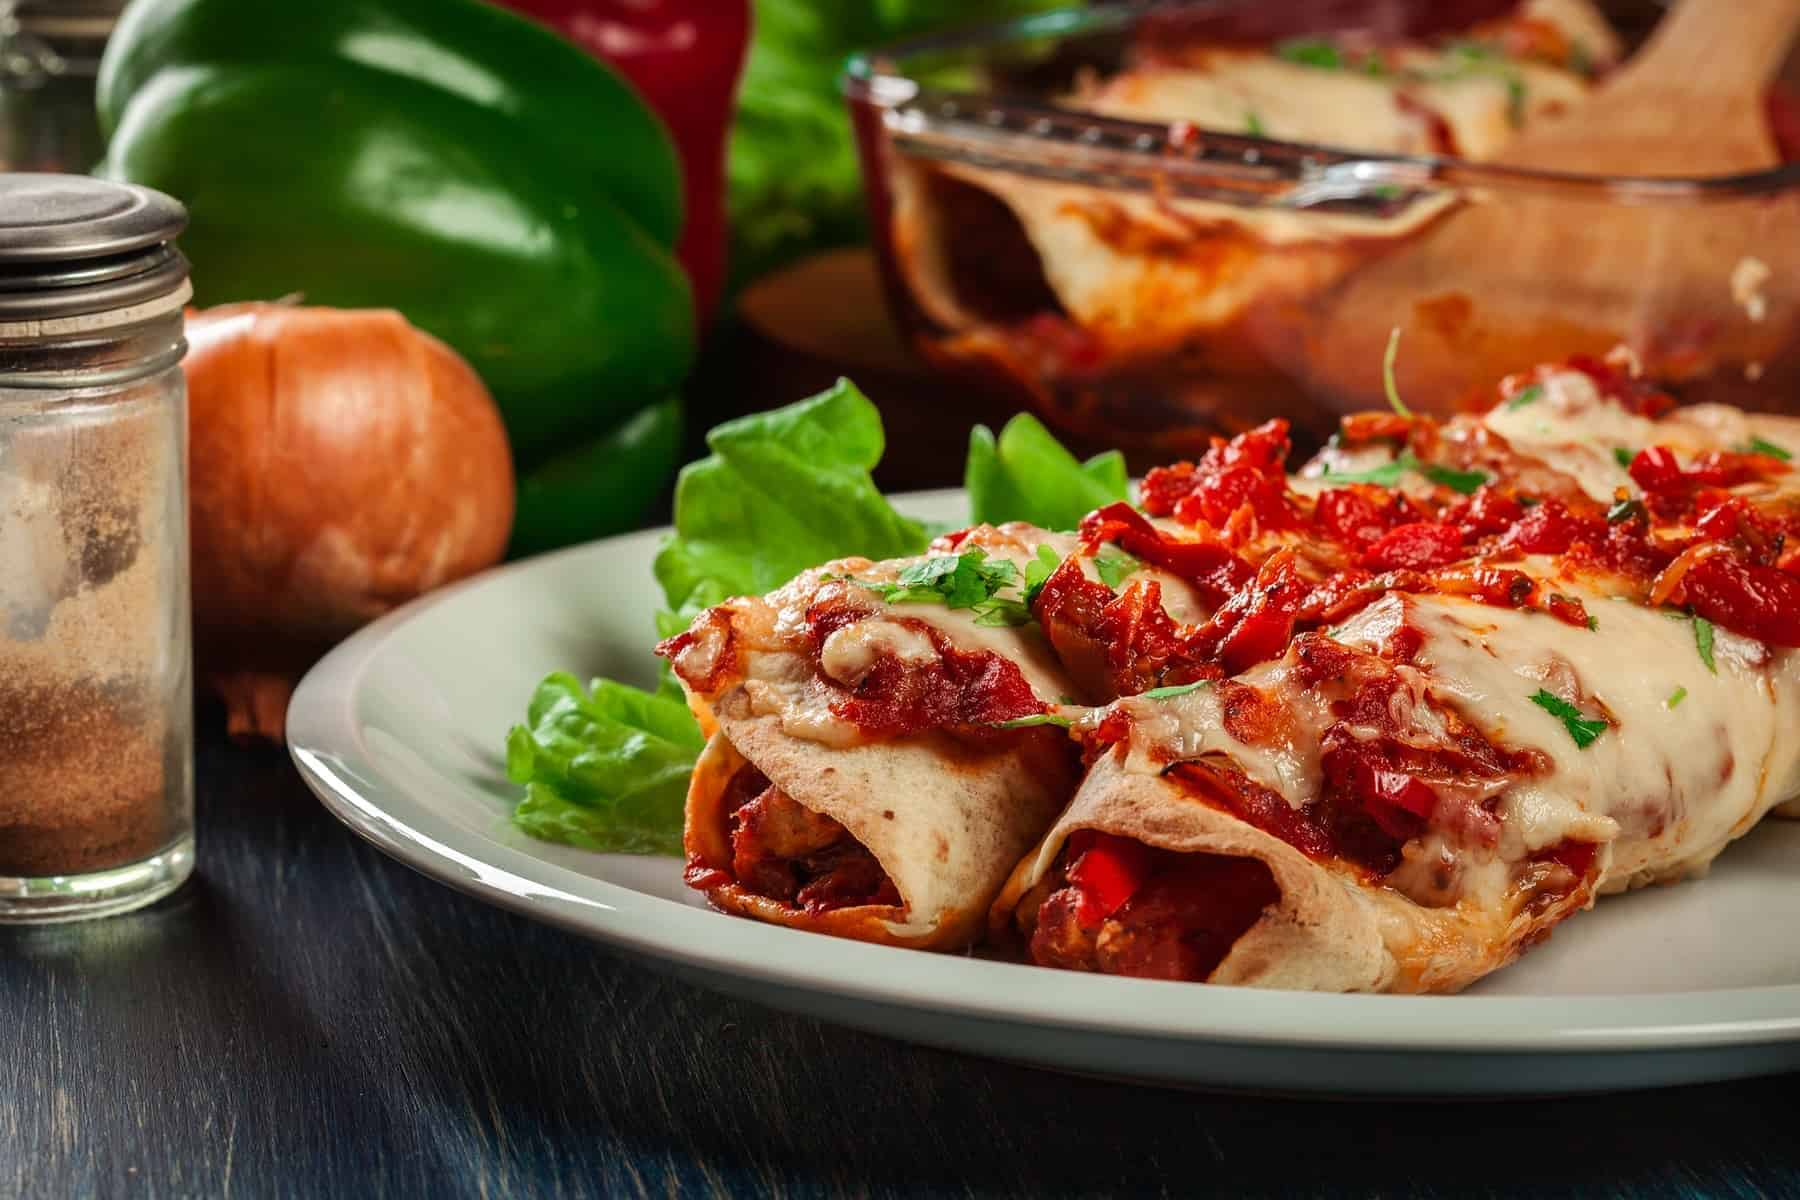 Mexican enchiladas with chicken meat, spicy tomato sauce and cheese on a plate